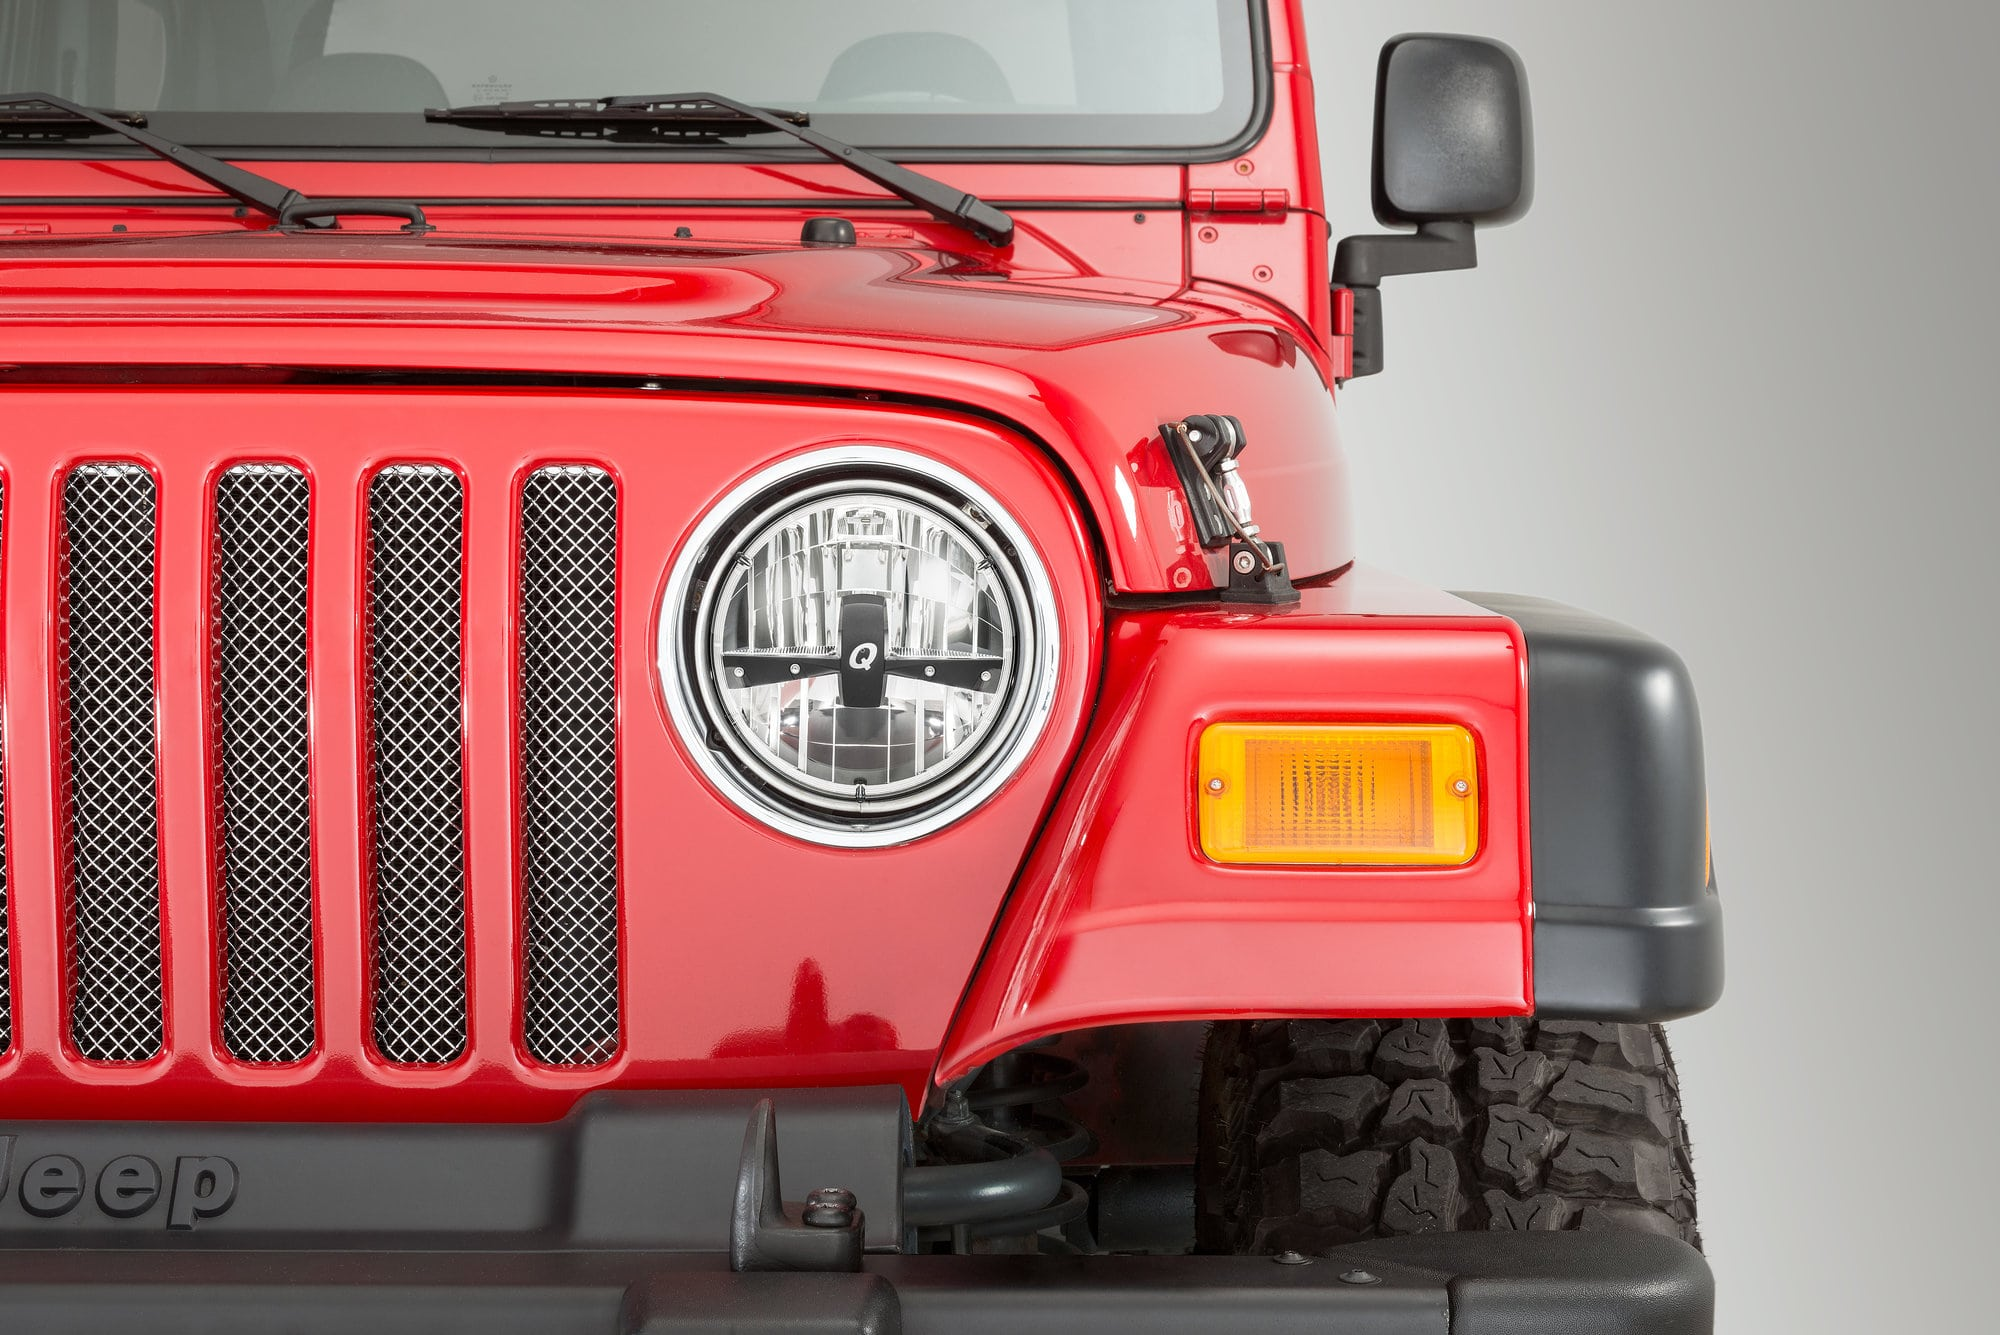 Jeep Headlight Alignment Service | near Huntington Park & Lynwood, CA